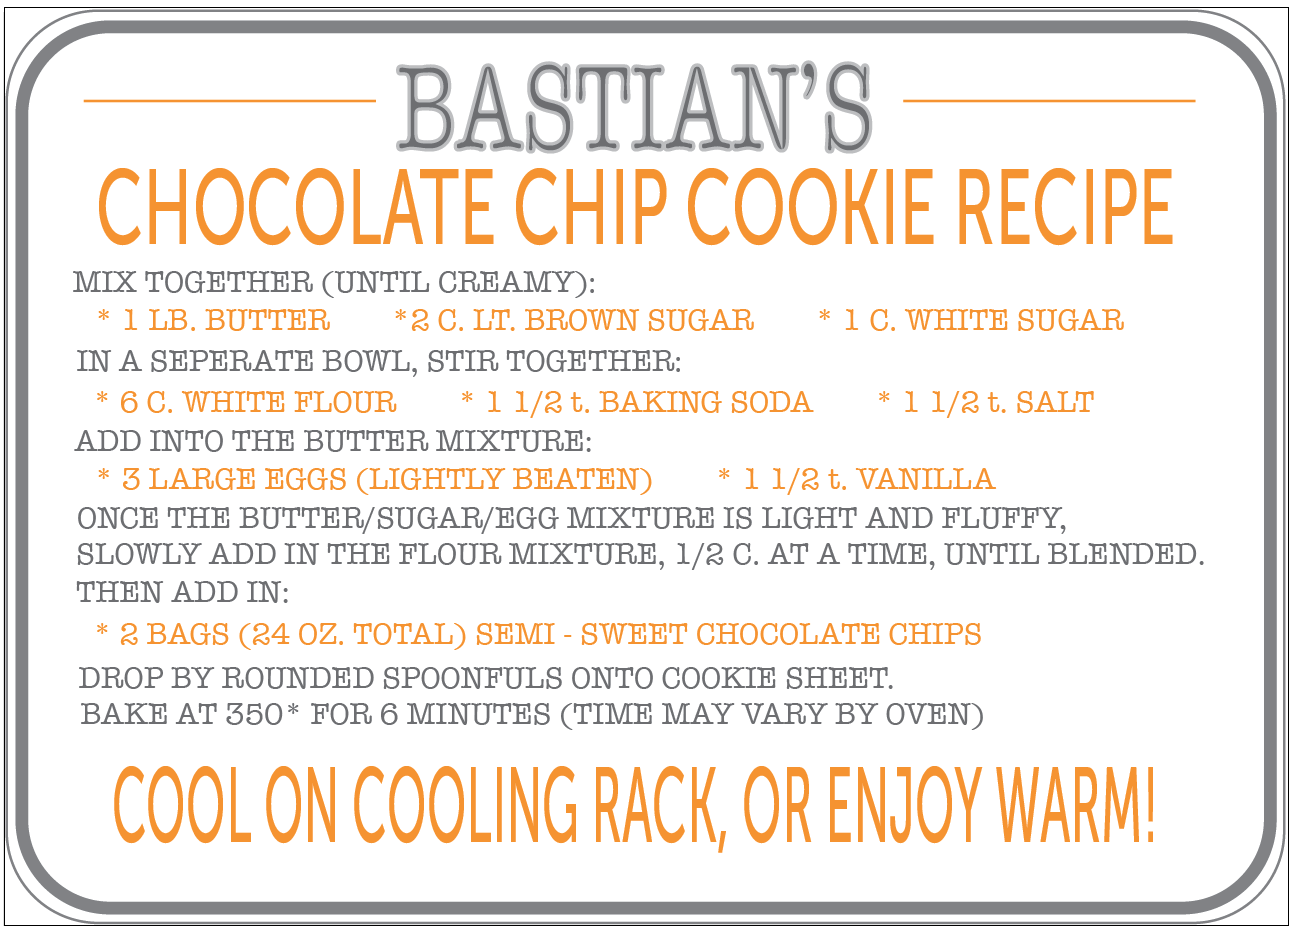 It took us a few years to find the ultimate, perfect, chocolate chip cookie recipe ~ and this is it!! We have loved it, so I hope you will too! Click  HERE  to download this recipe card and try it out. Let me know what you think!